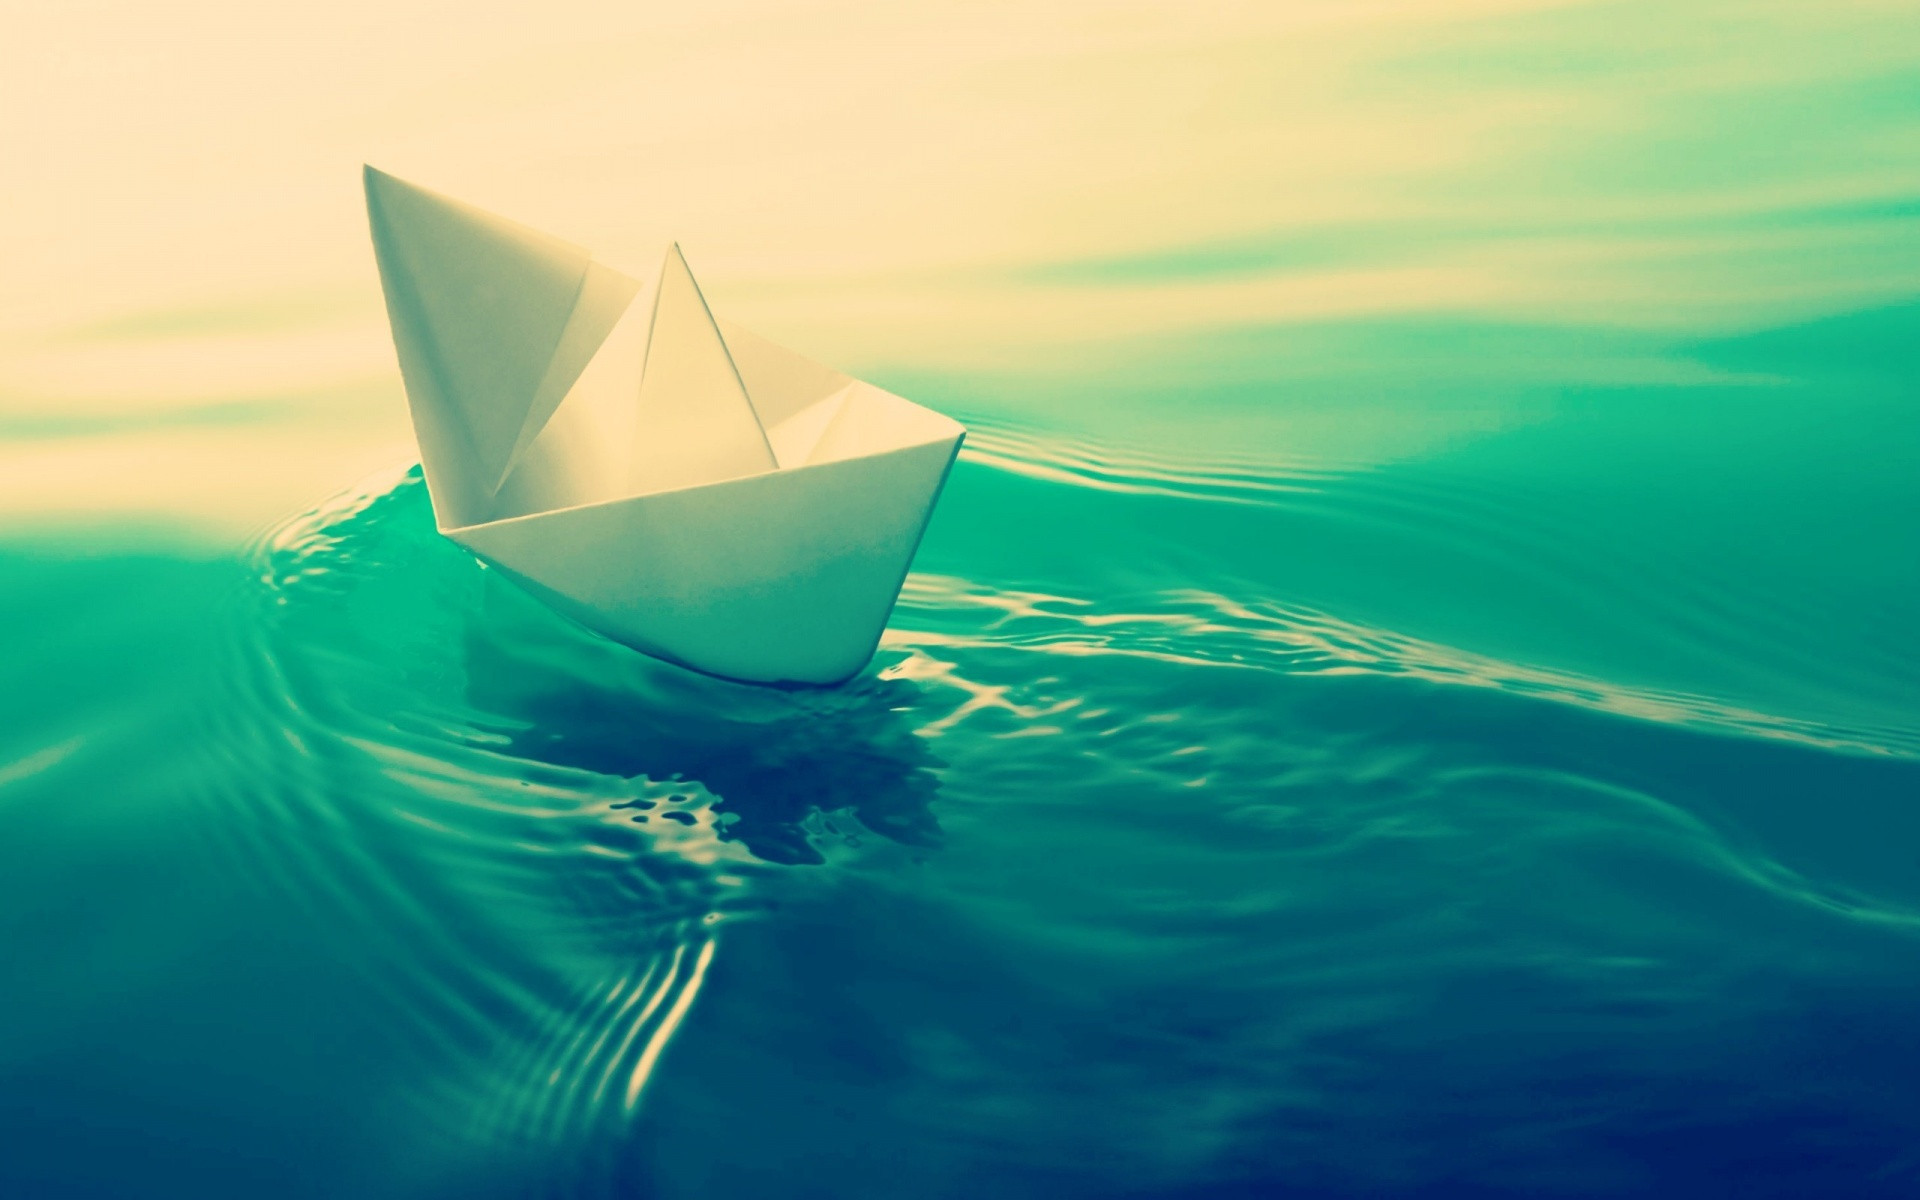 1920x1200 Origami Ship Zen Wallpaper By HD Wallpapers Daily